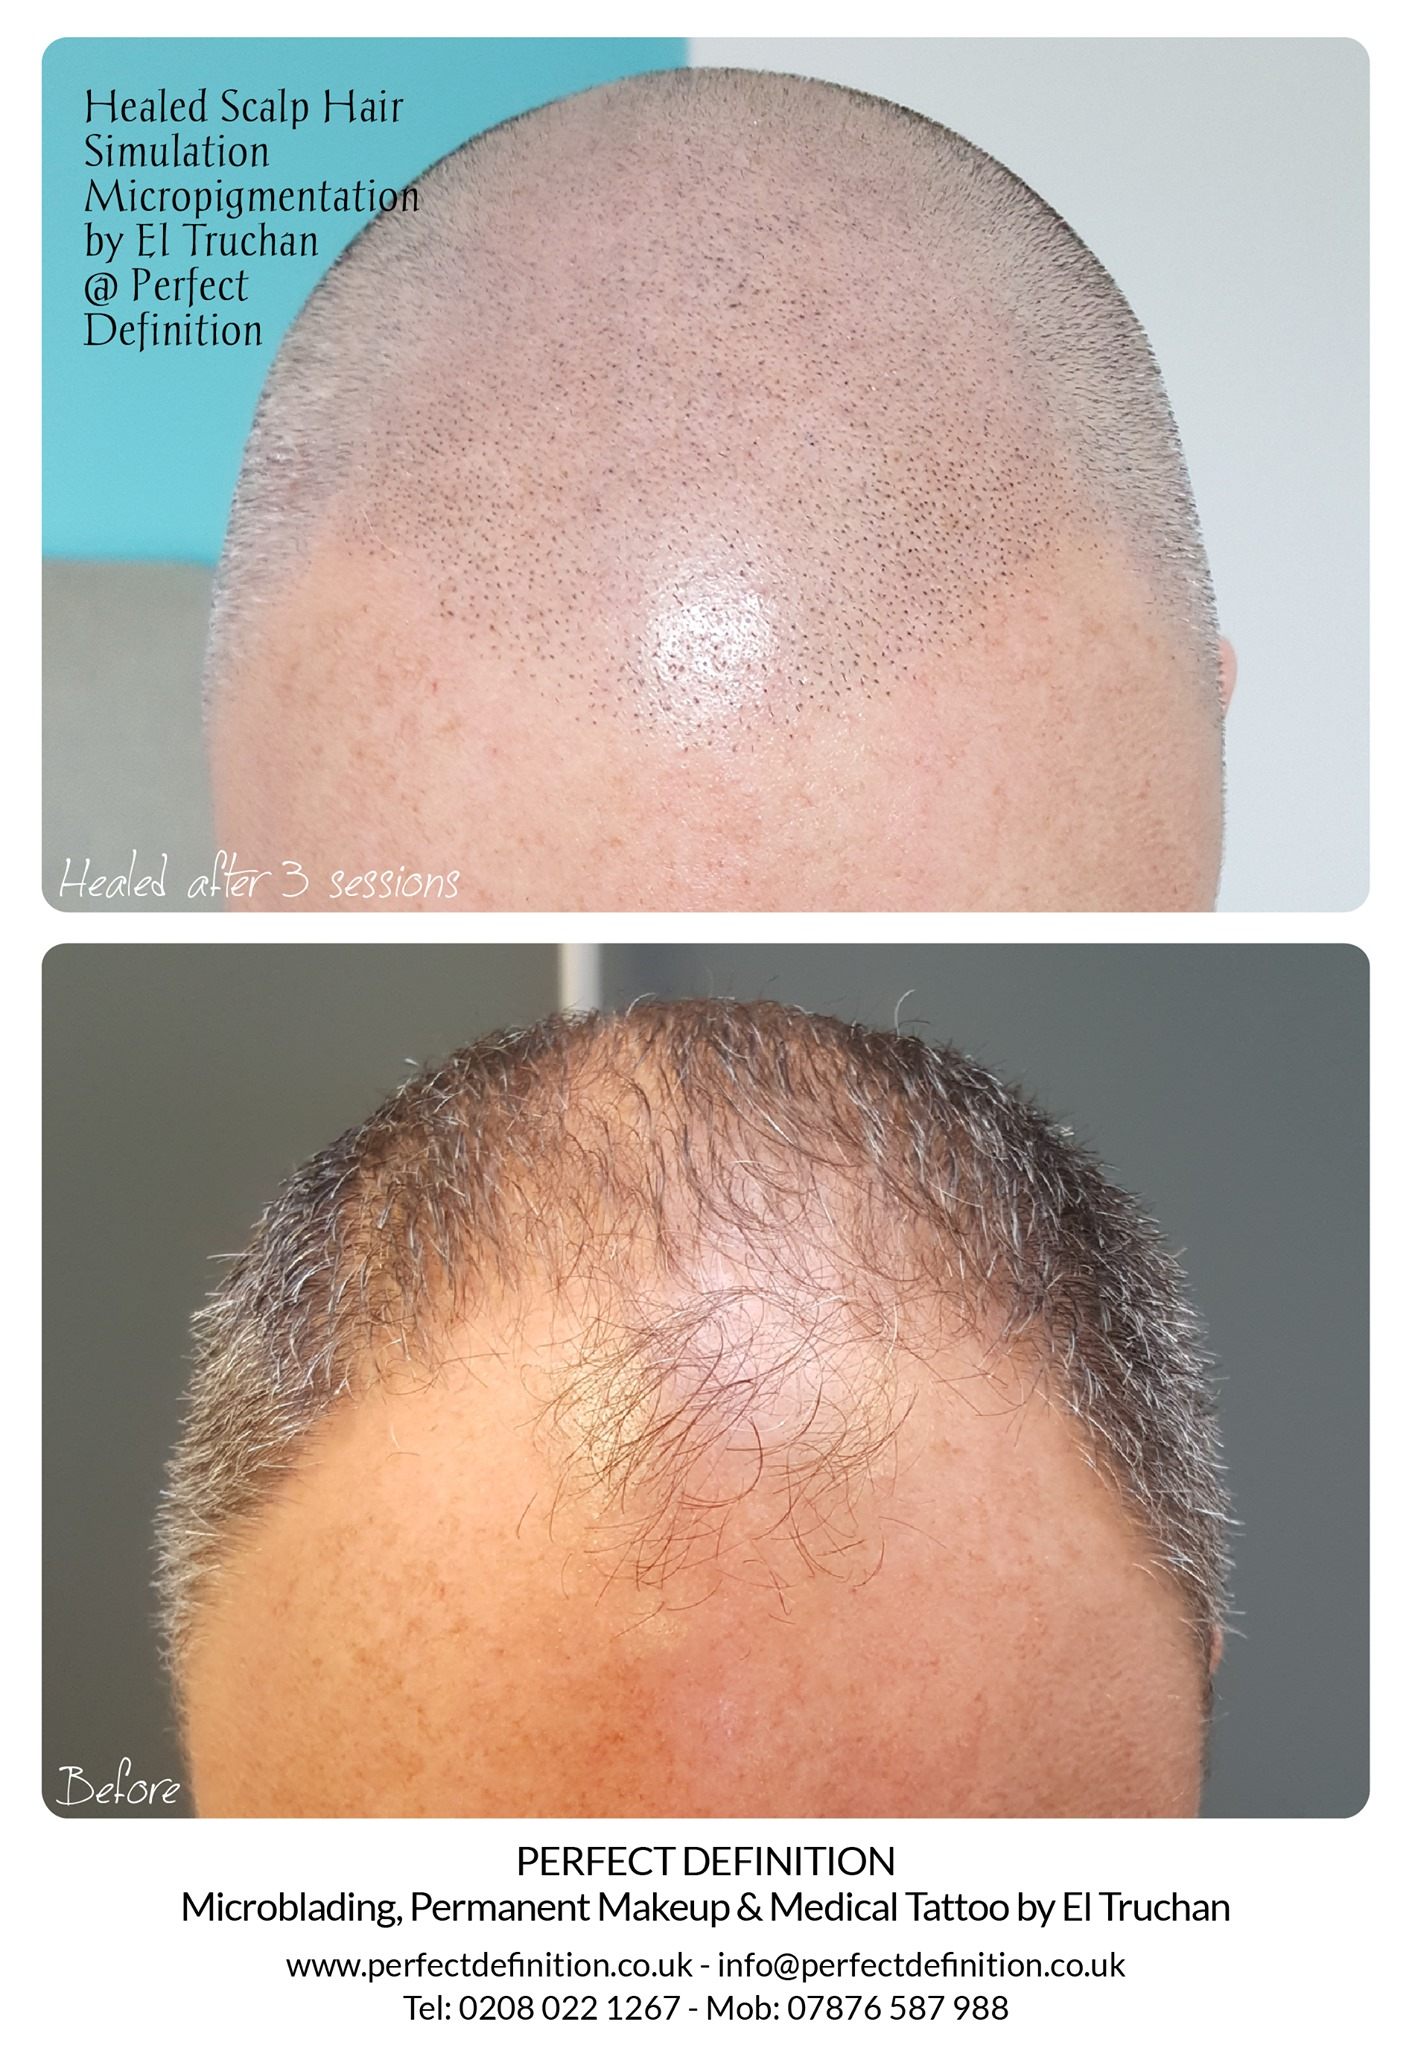 Healed Scalp Micropigmentation by El Tru